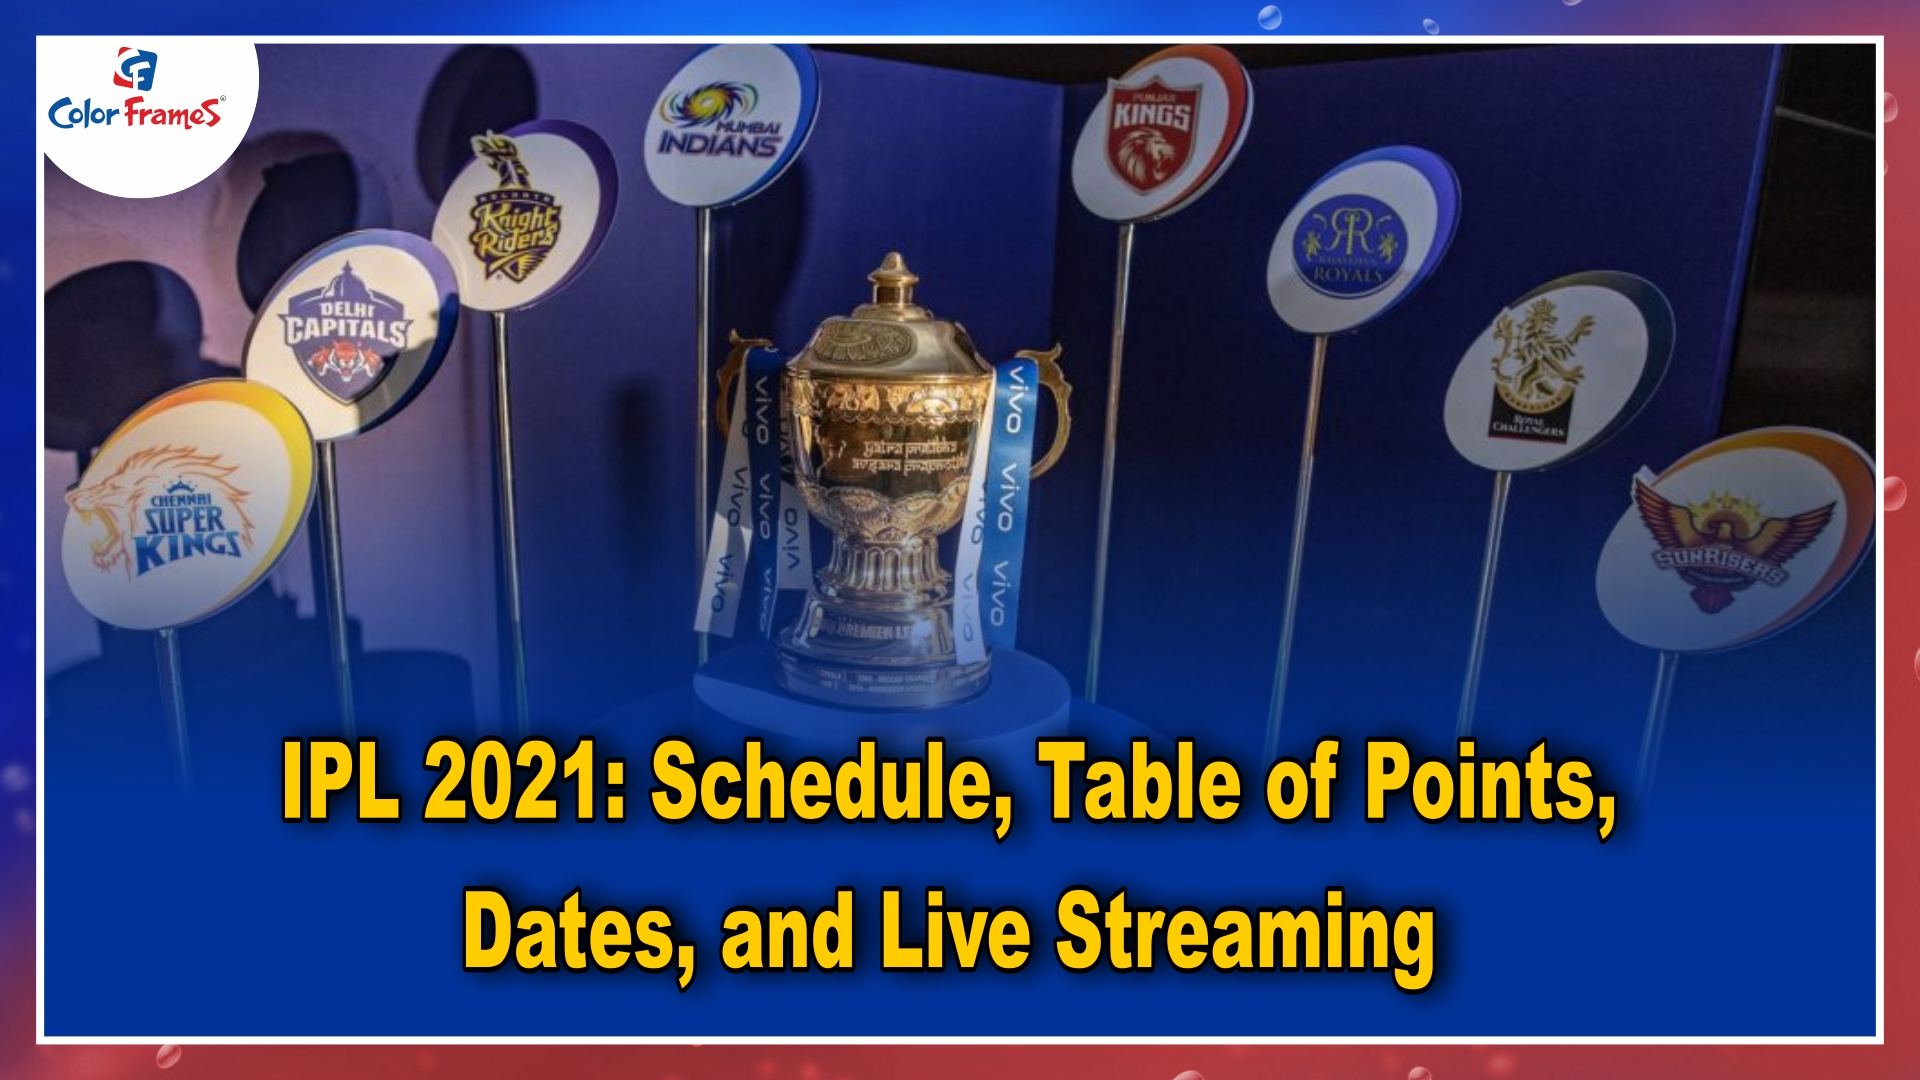 IPL 2021: Schedule, Table of Points, Dates, and Live Streaming